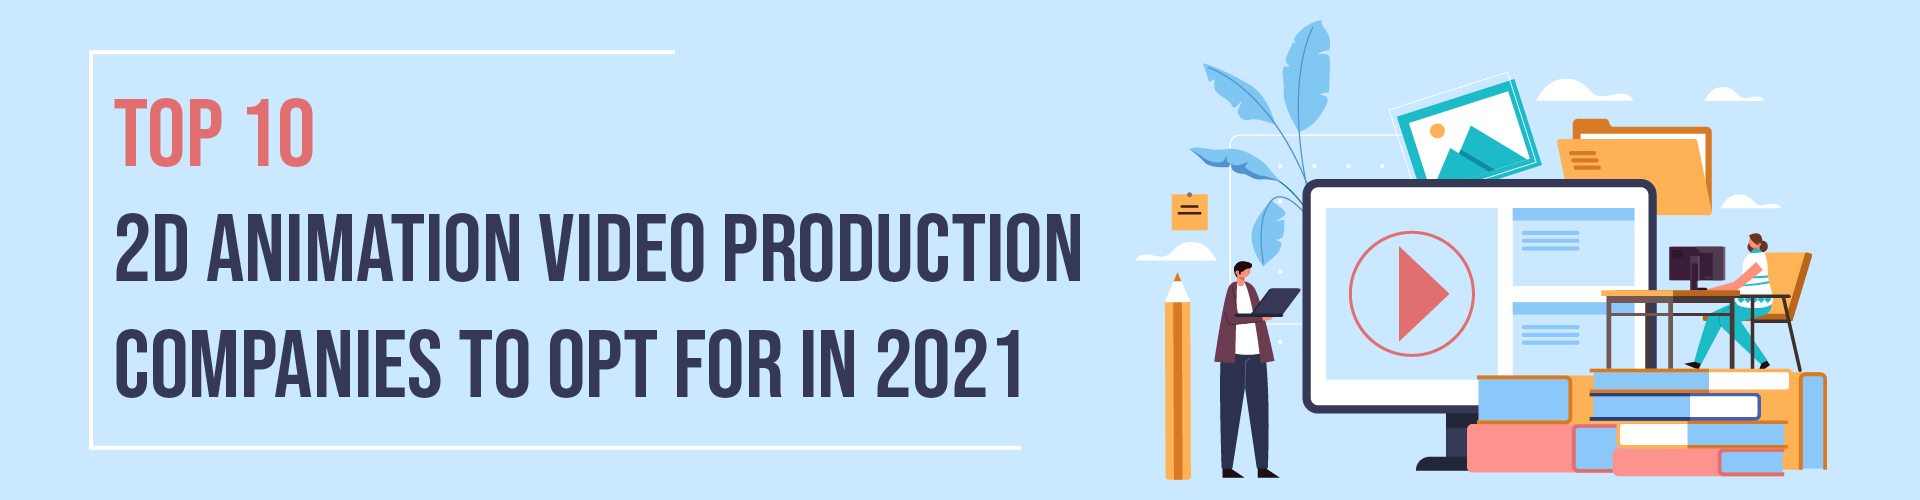 Top 10 2d Animation Video Production Companies In 2021